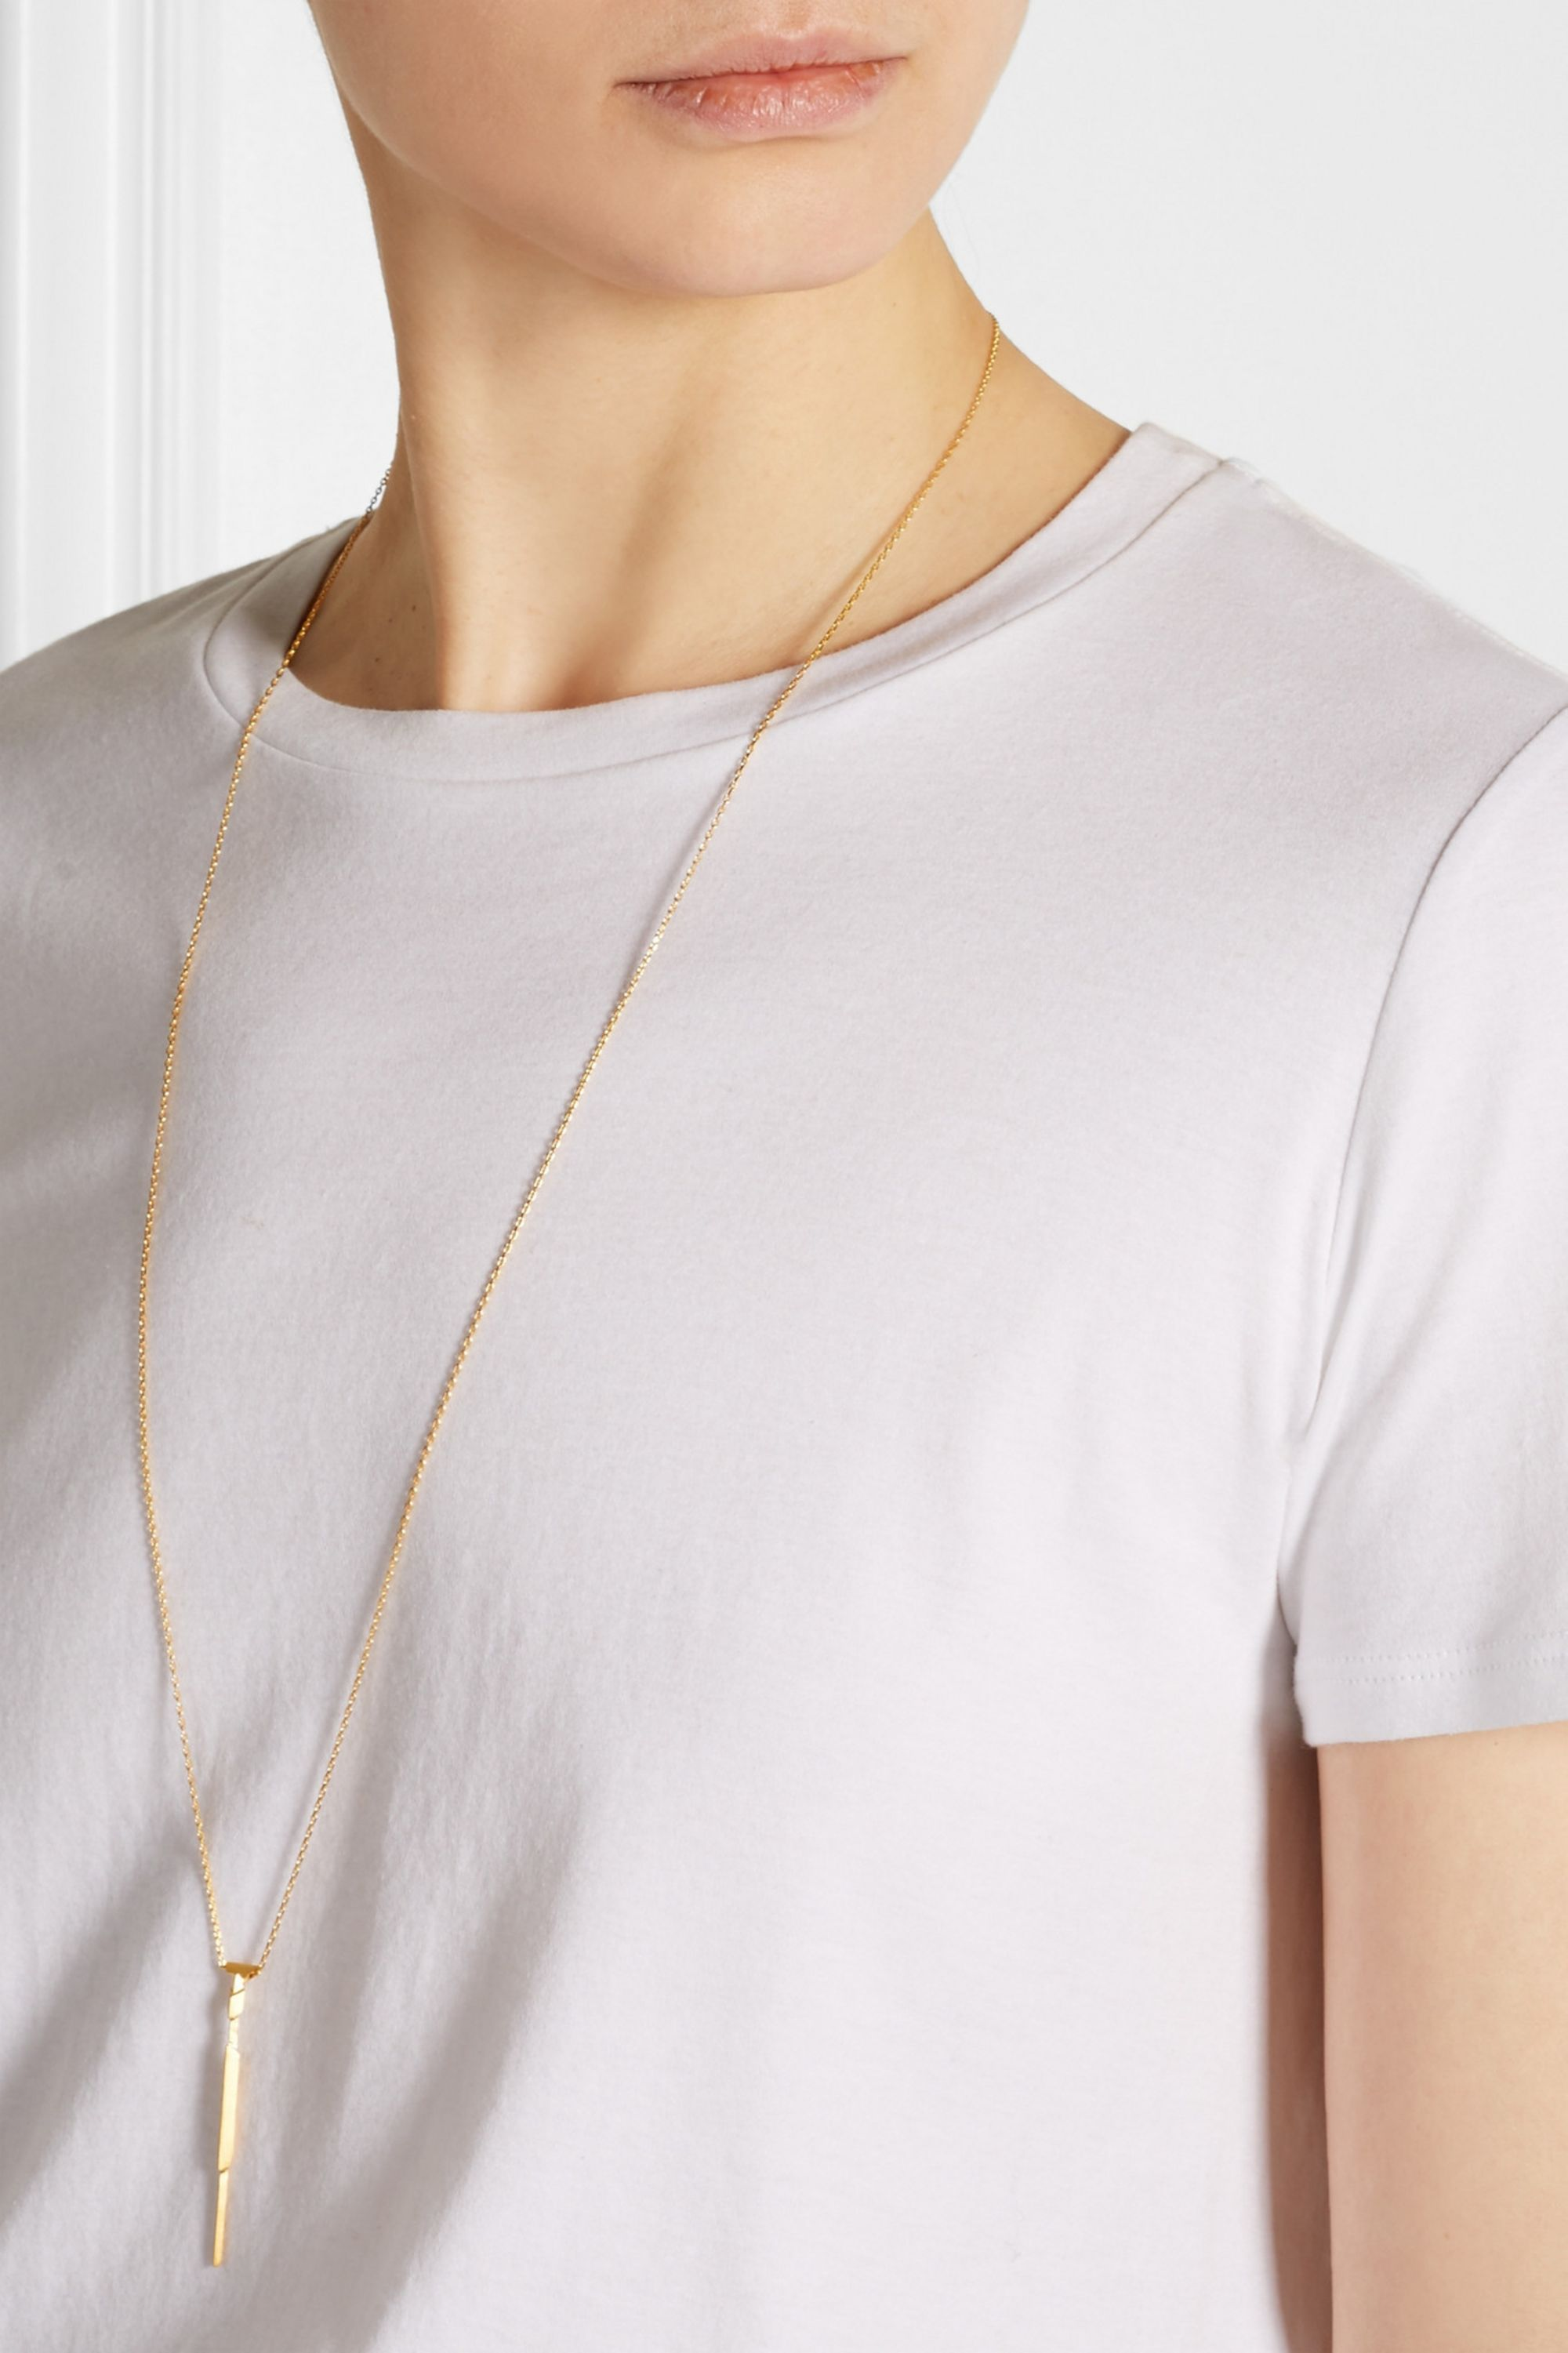 Maria Black Arrow gold-plated necklace